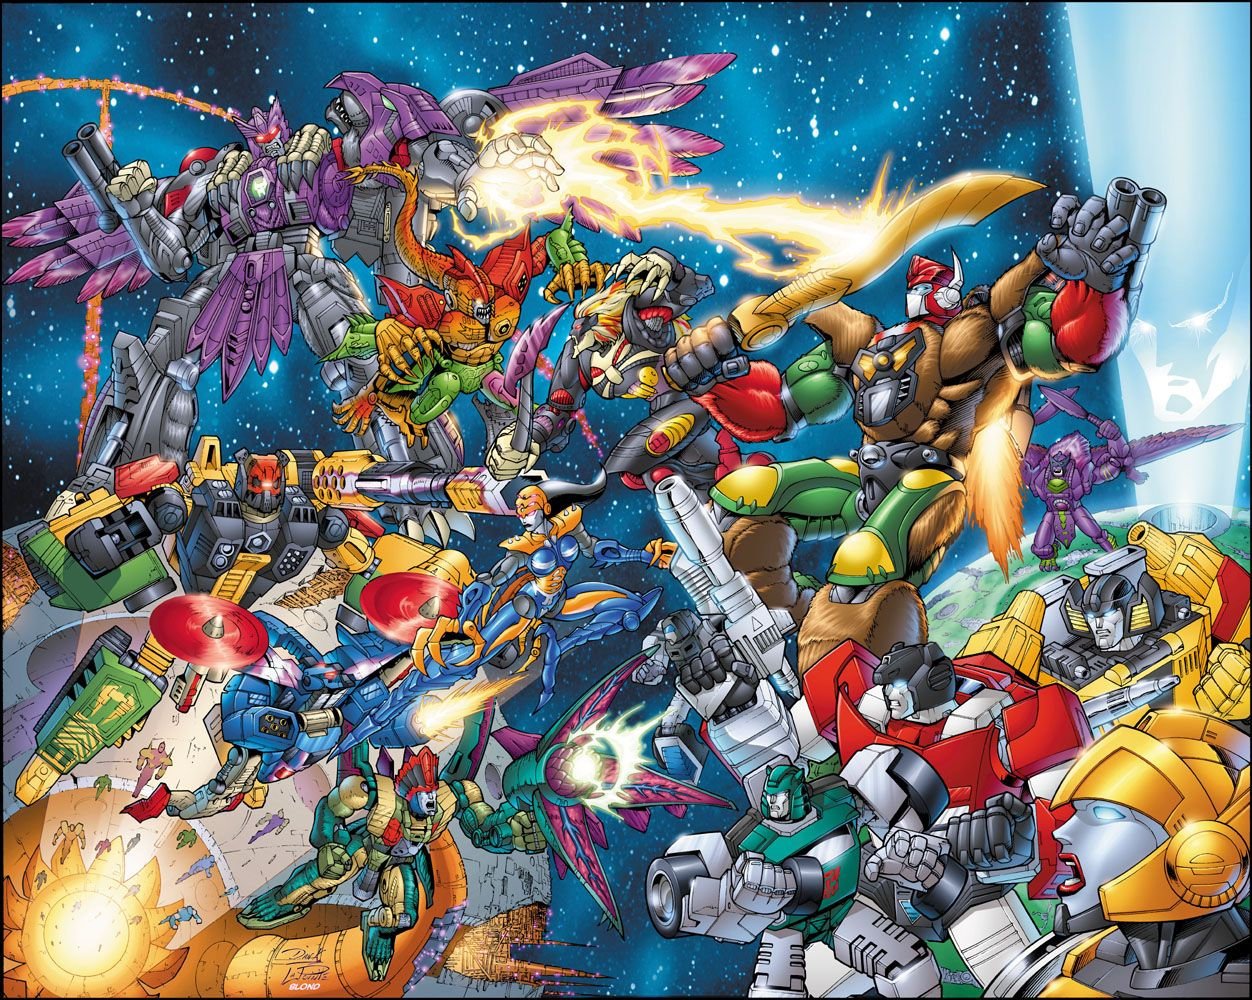 Transformers Universe cover, Lines by Dan Khanna & Serge Lapointe, Color by Blond The Colorist